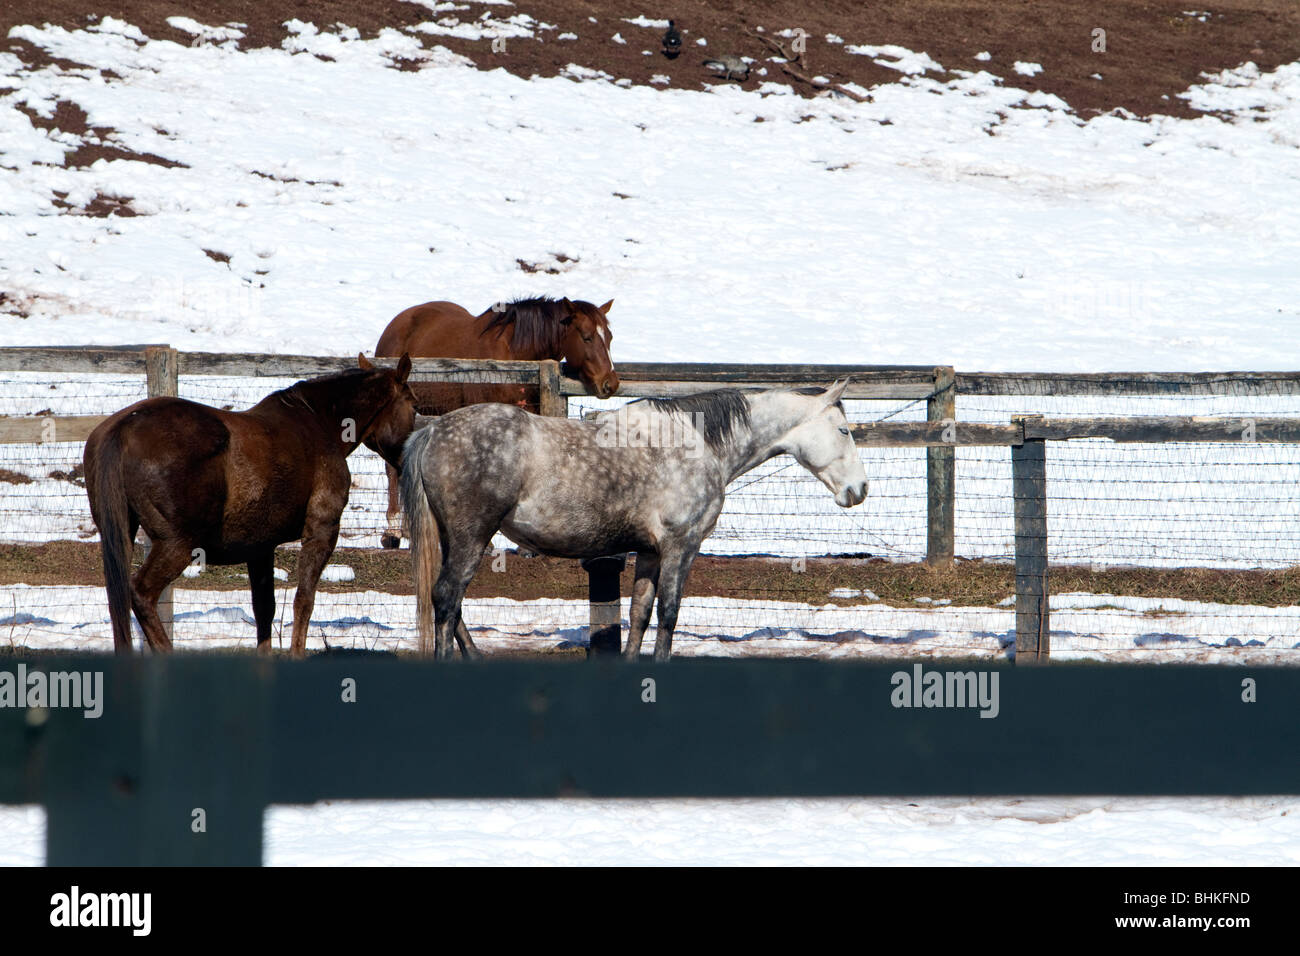 A dapple grey color colour horse with two brown horses in coral. Shot in winter with snow on the ground. - Stock Image